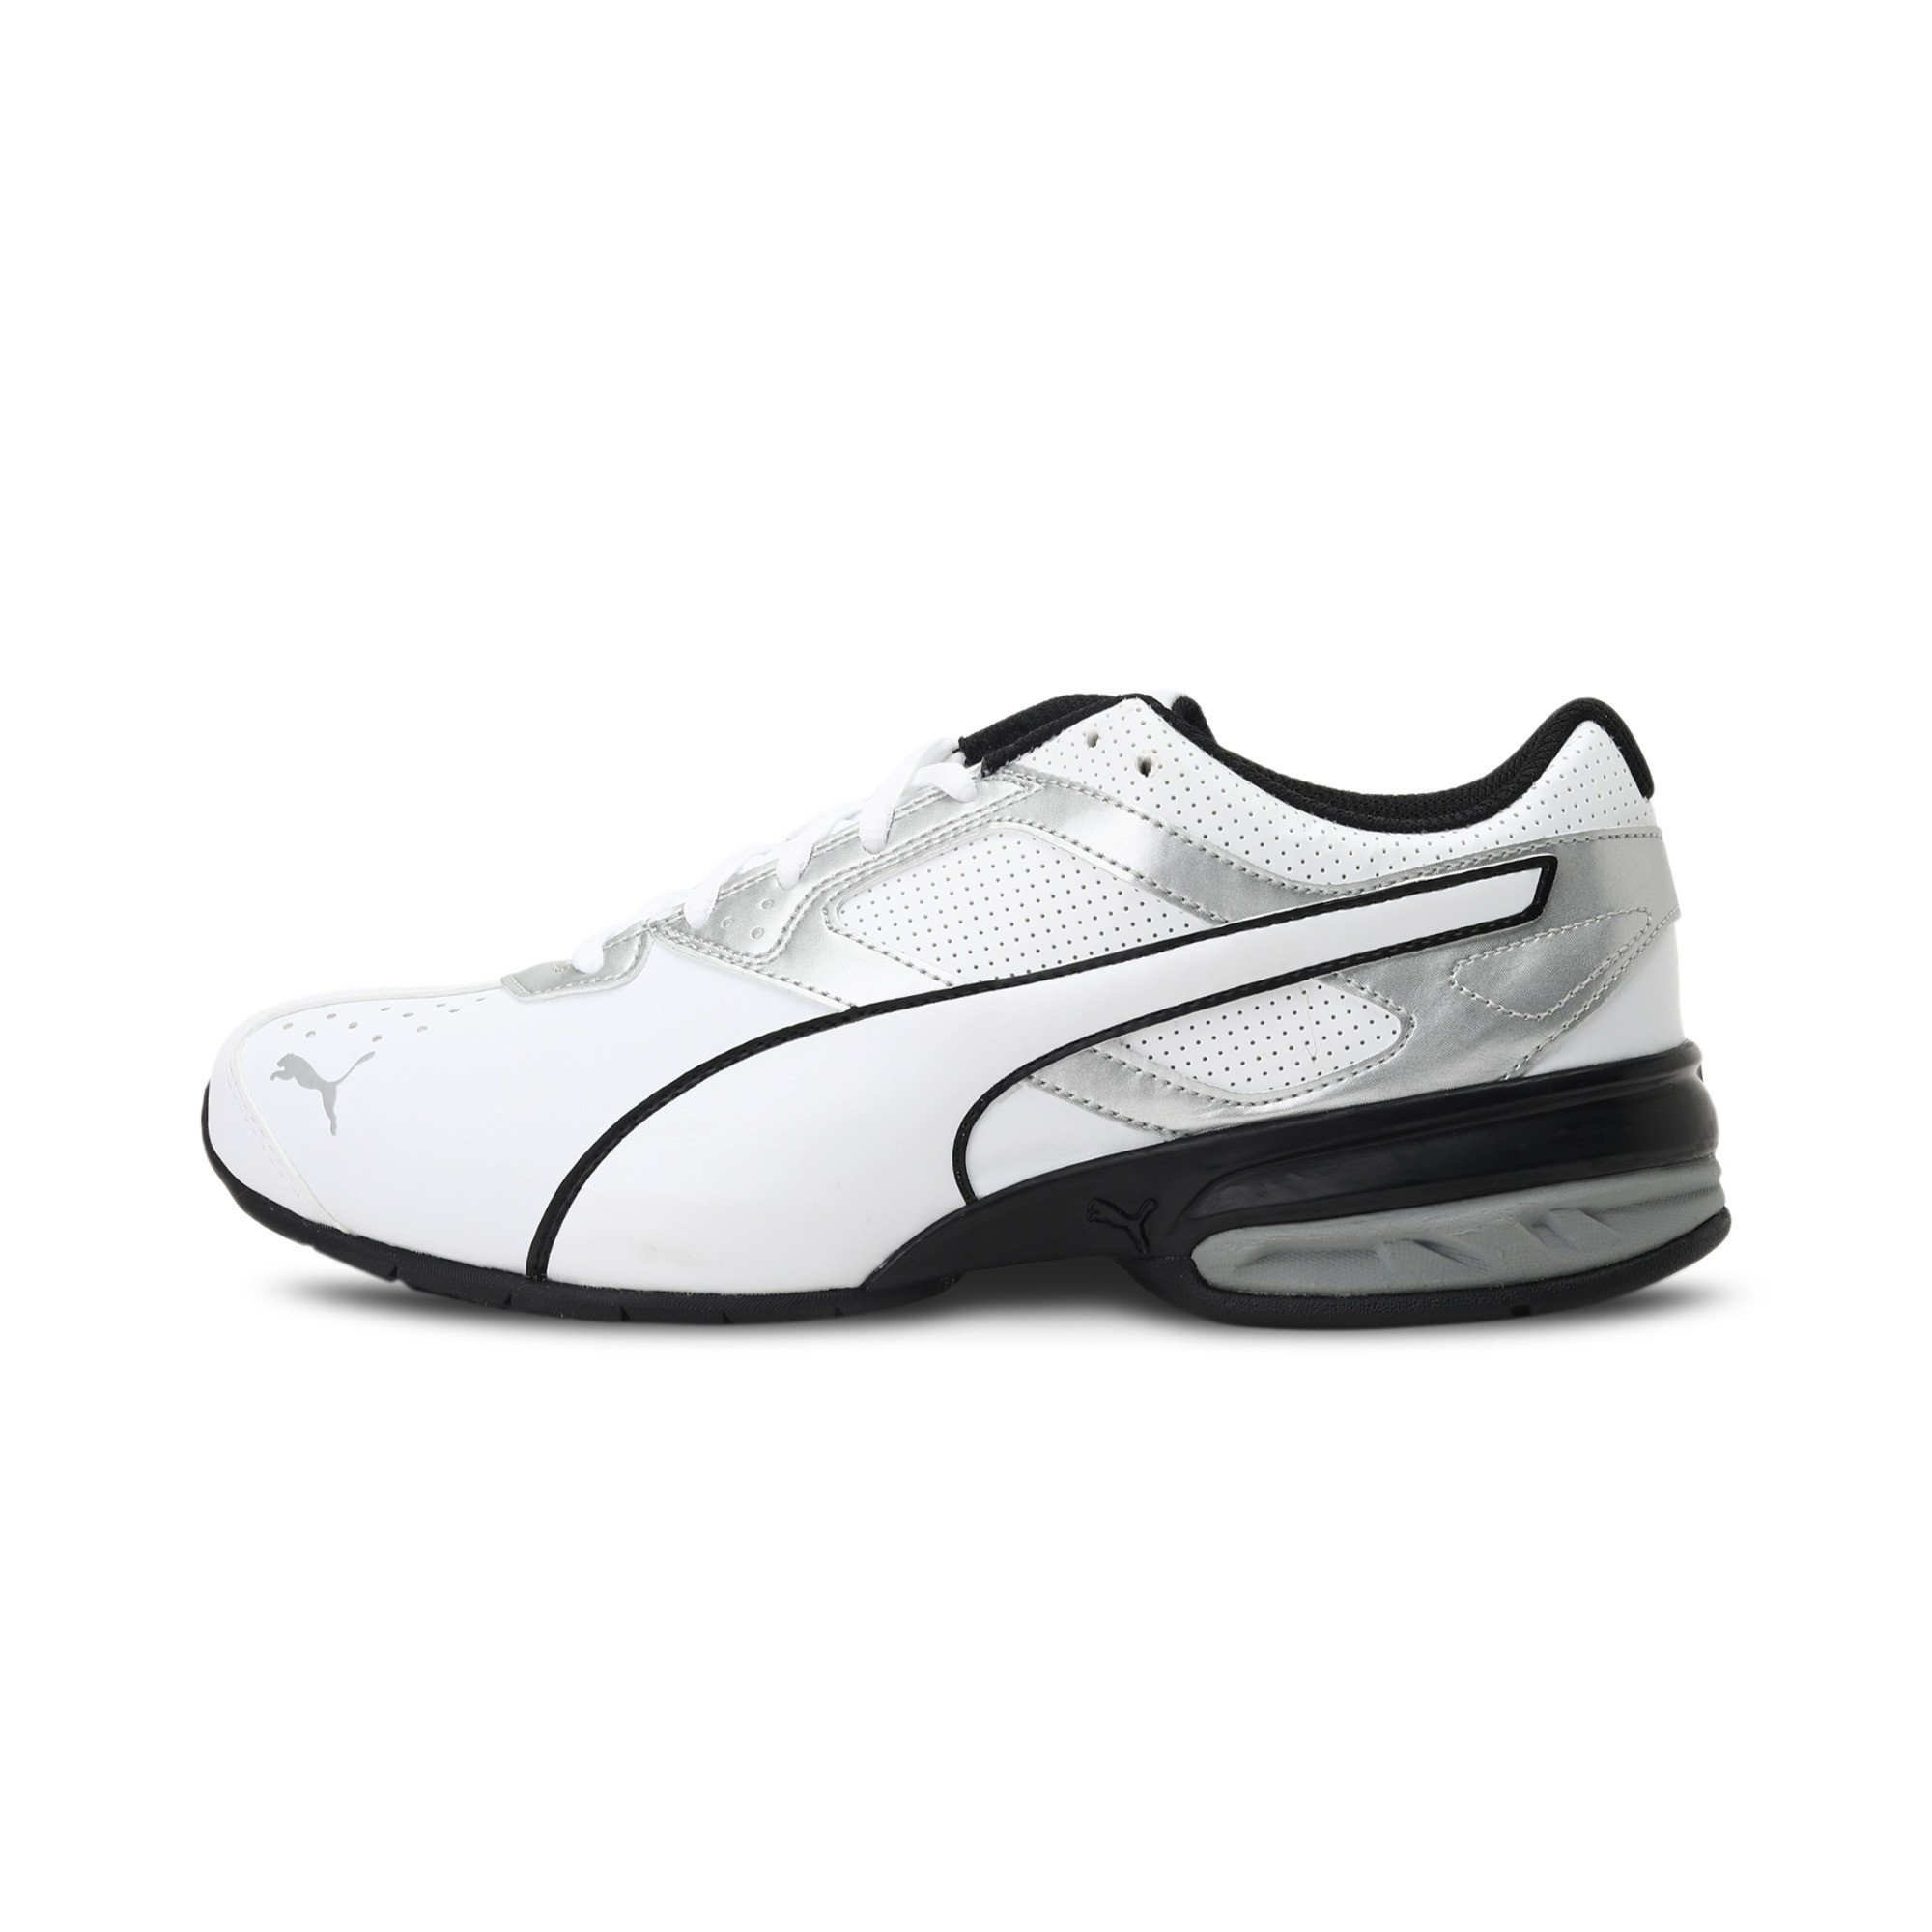 PUMA-Tazon-6-FM-Men-039-s-Sneakers-Men-Shoe-Running thumbnail 4